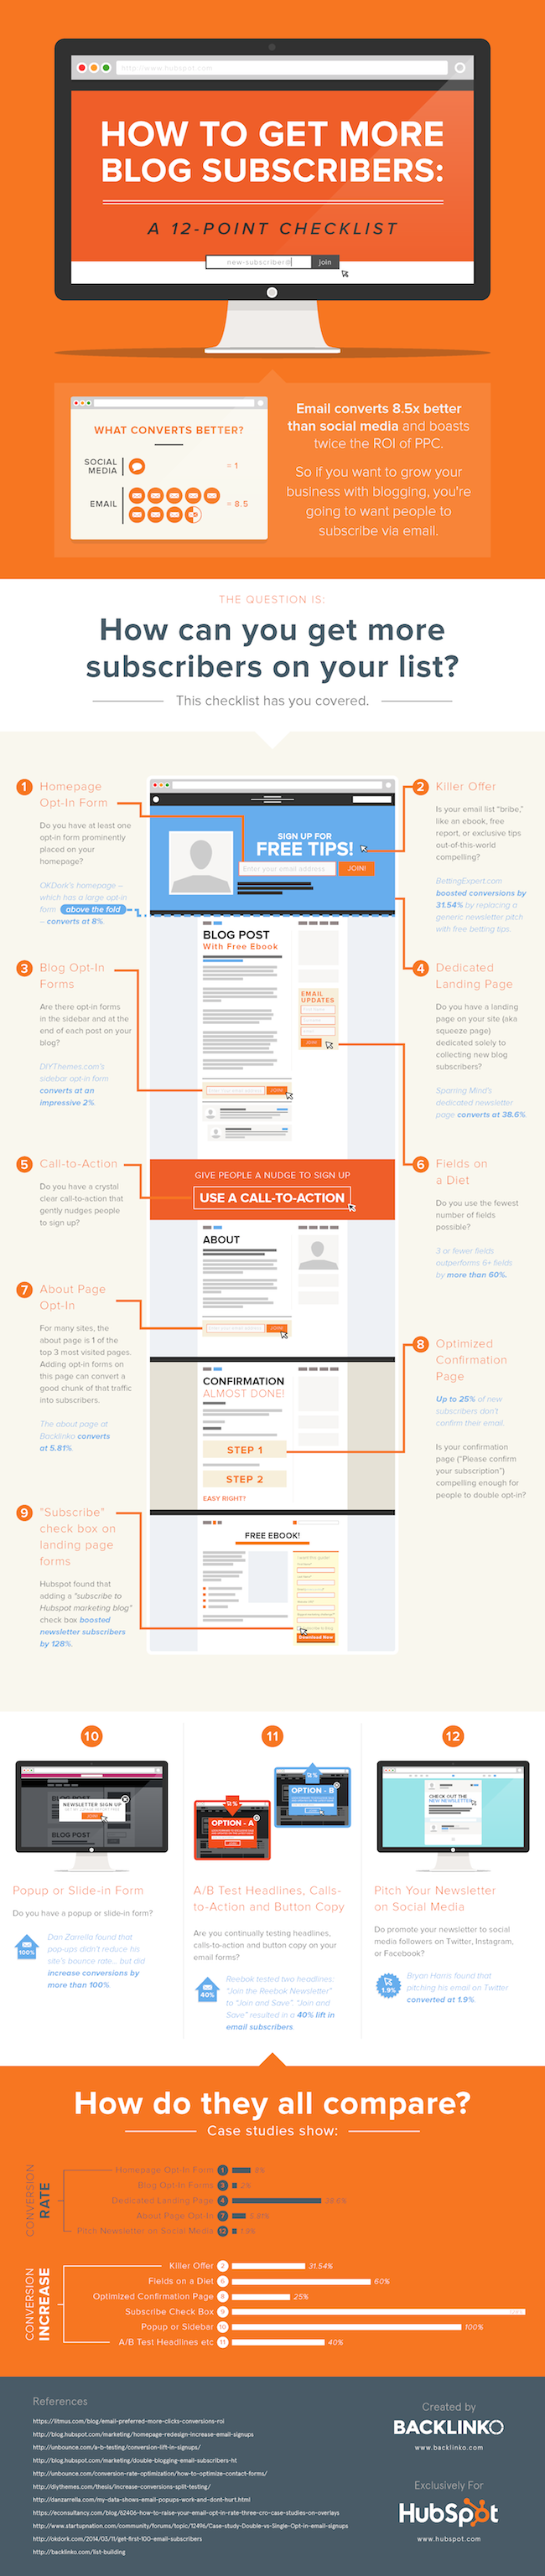 How_To_Get_More_Blog_Subscribers_Infographic_-_small